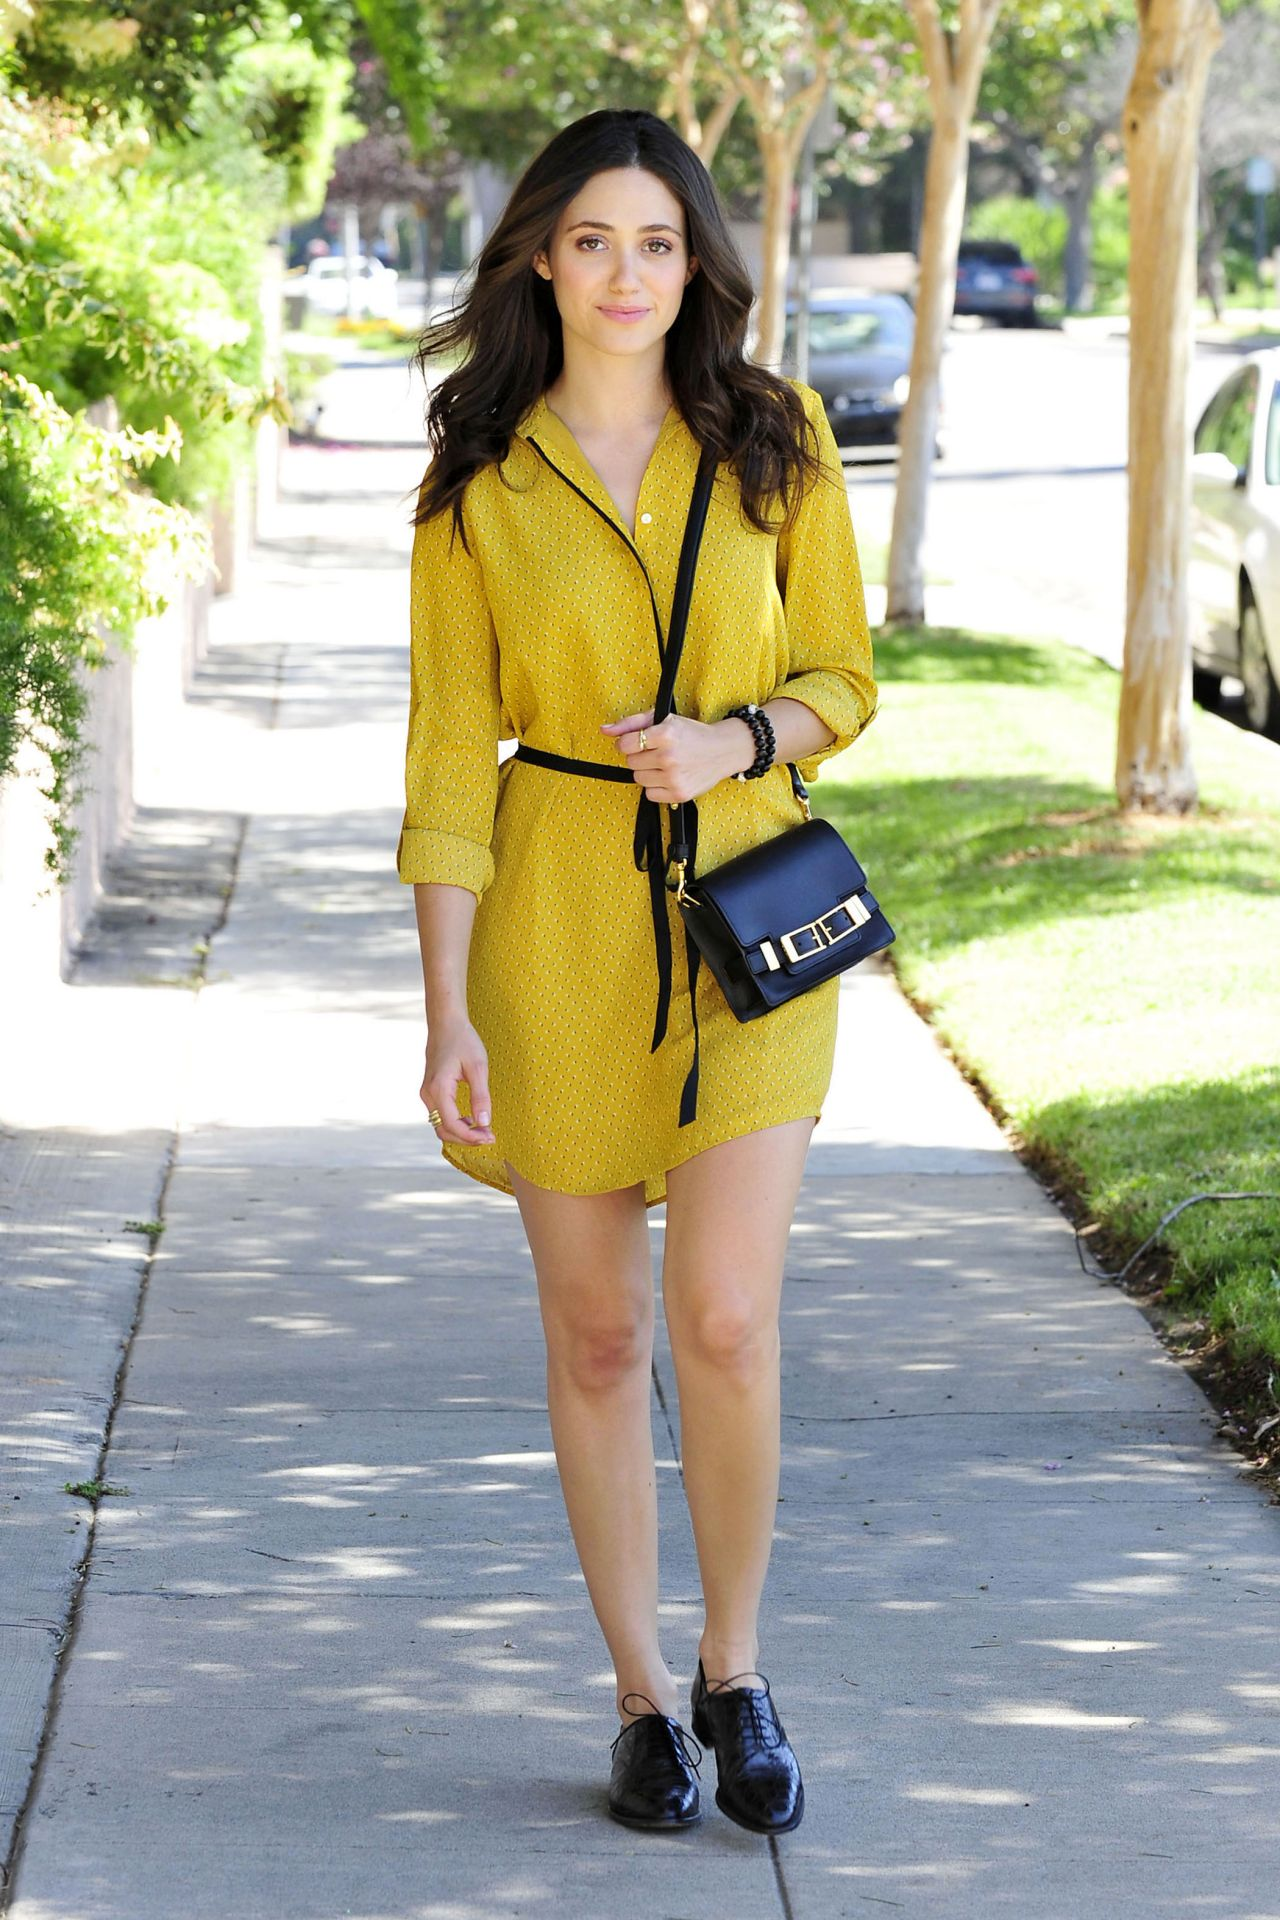 Emmy Rossum Out in Beverly Hills - August 2014